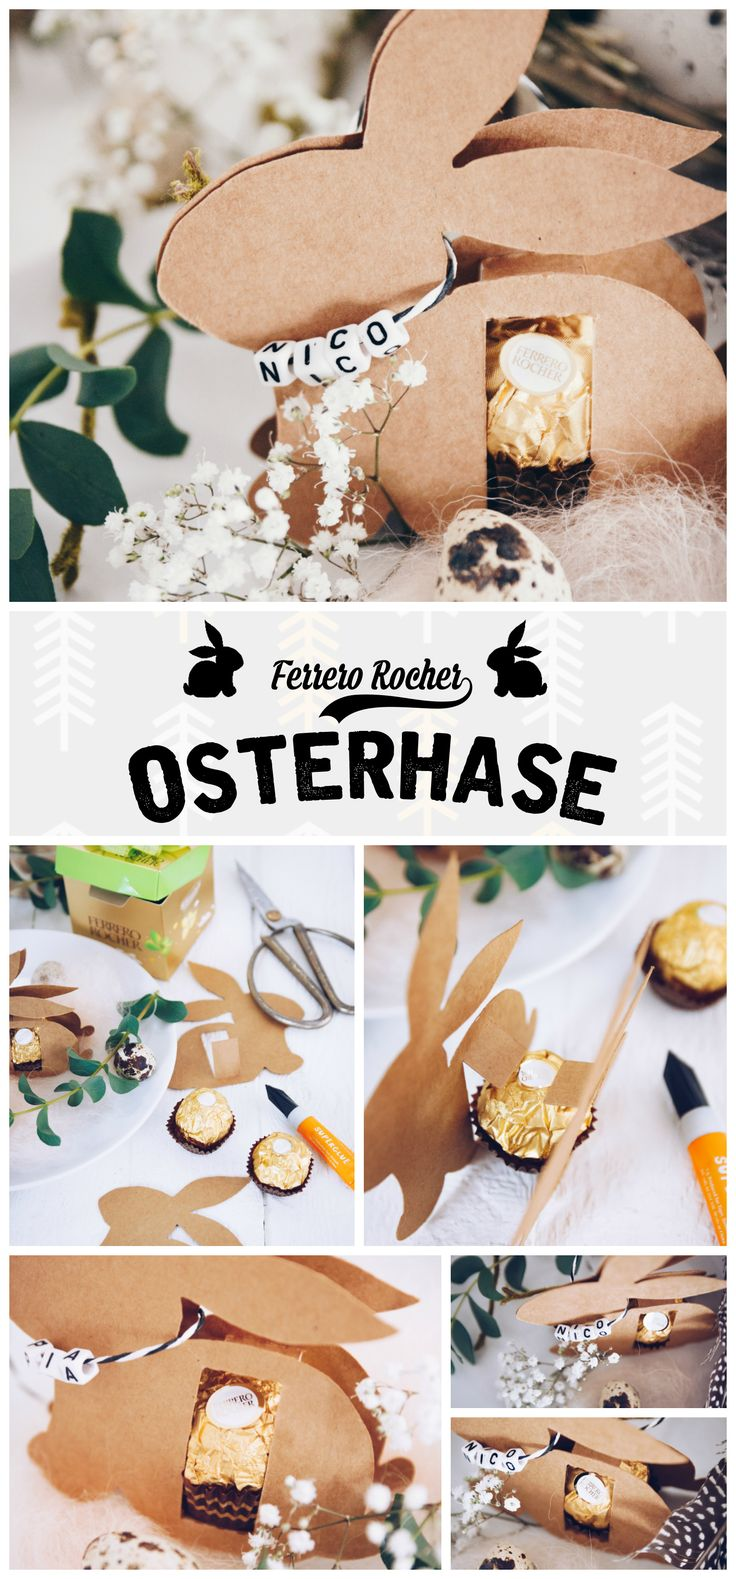 Anleitung für den DIY Osterhasen mit Ferrero Rocher (inklusive Gratis-Vorlage) - perfekt als Tischkarte für den Osterbrunch oder als selbstgemachtes Mitbringsel zu Ostern - by titatoni.blogspot.de - DIY easter bunny made with Ferrero Rocher - a perfekt little handmade gift!